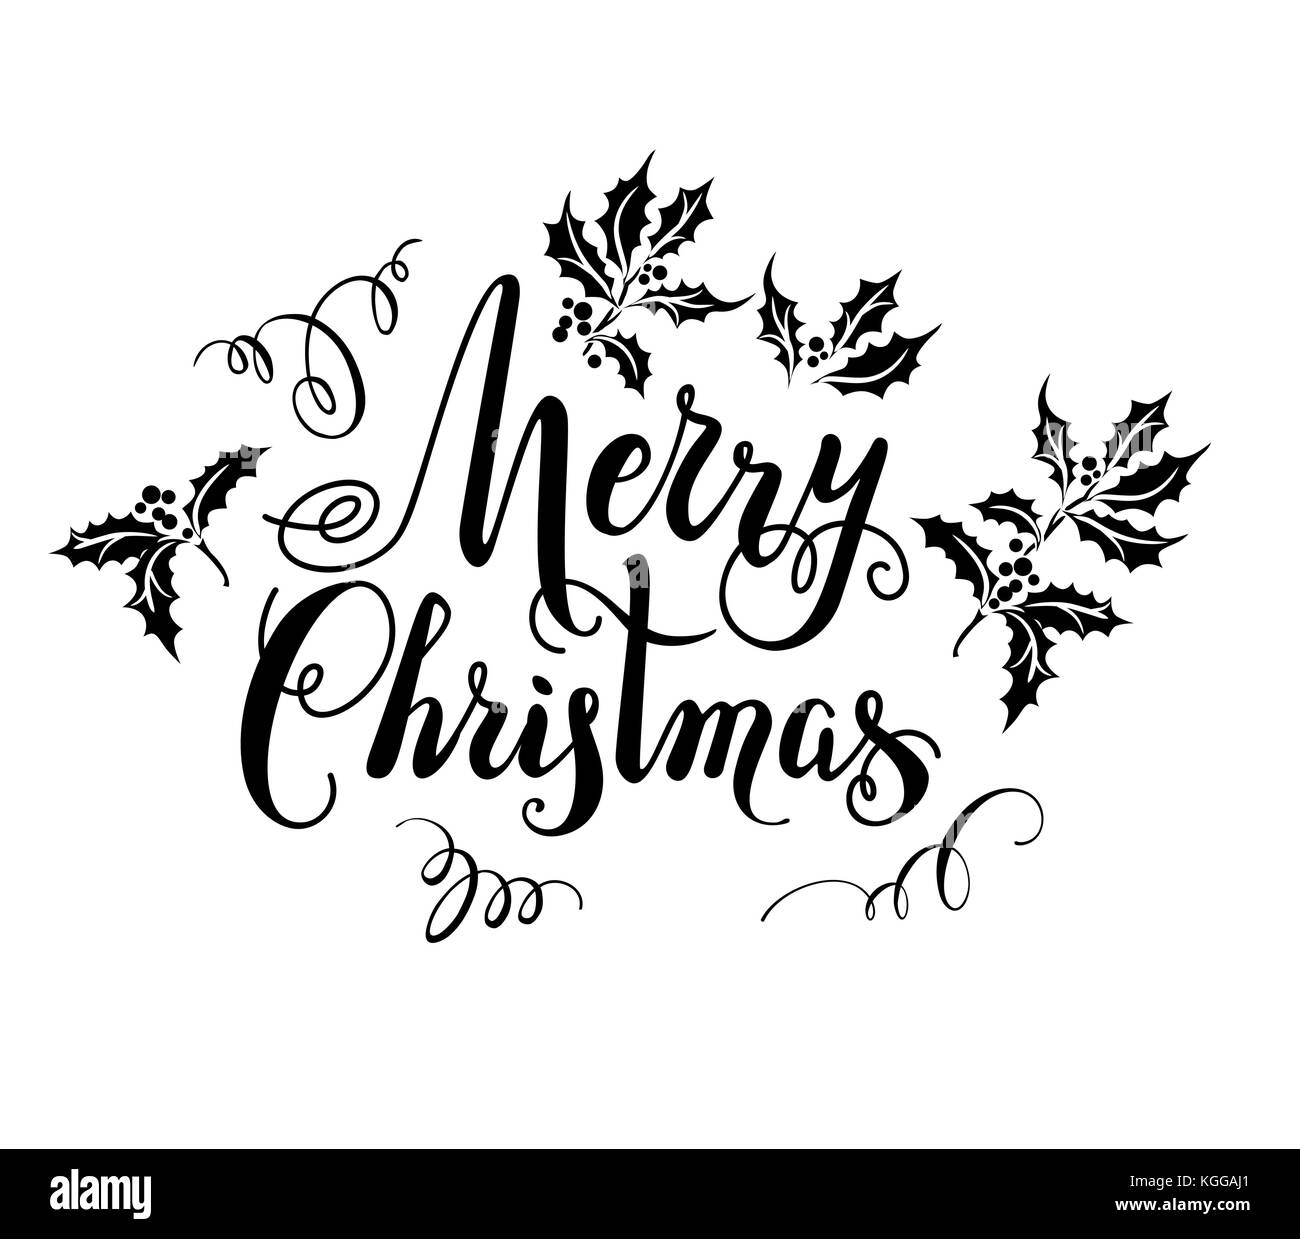 merry christmas hand lettering signature stockfotos. Black Bedroom Furniture Sets. Home Design Ideas